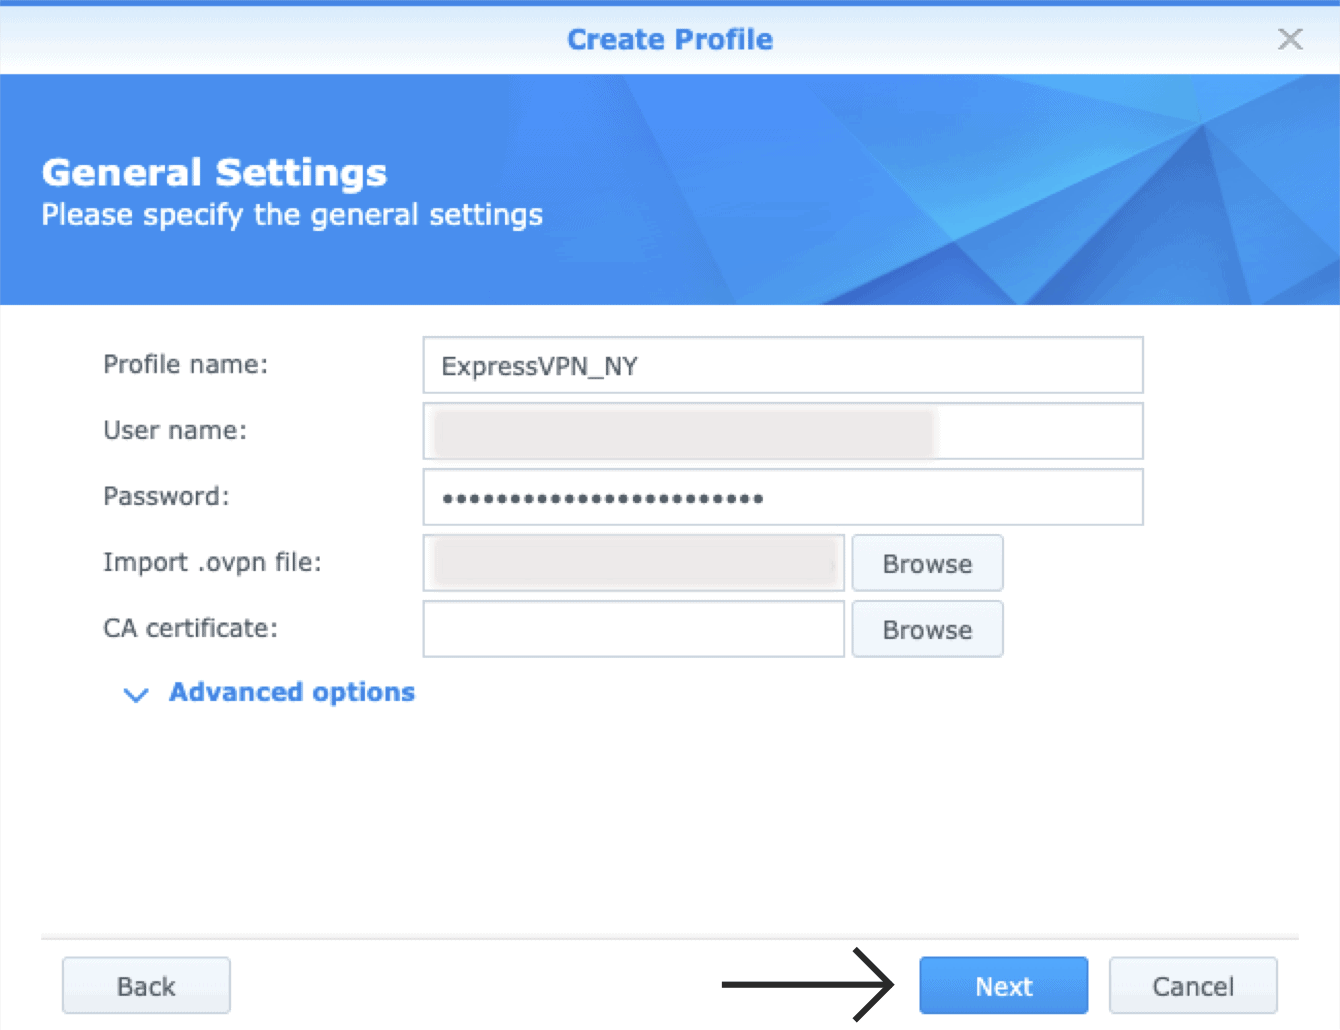 Specify the general settings for your OpenVPN connection.